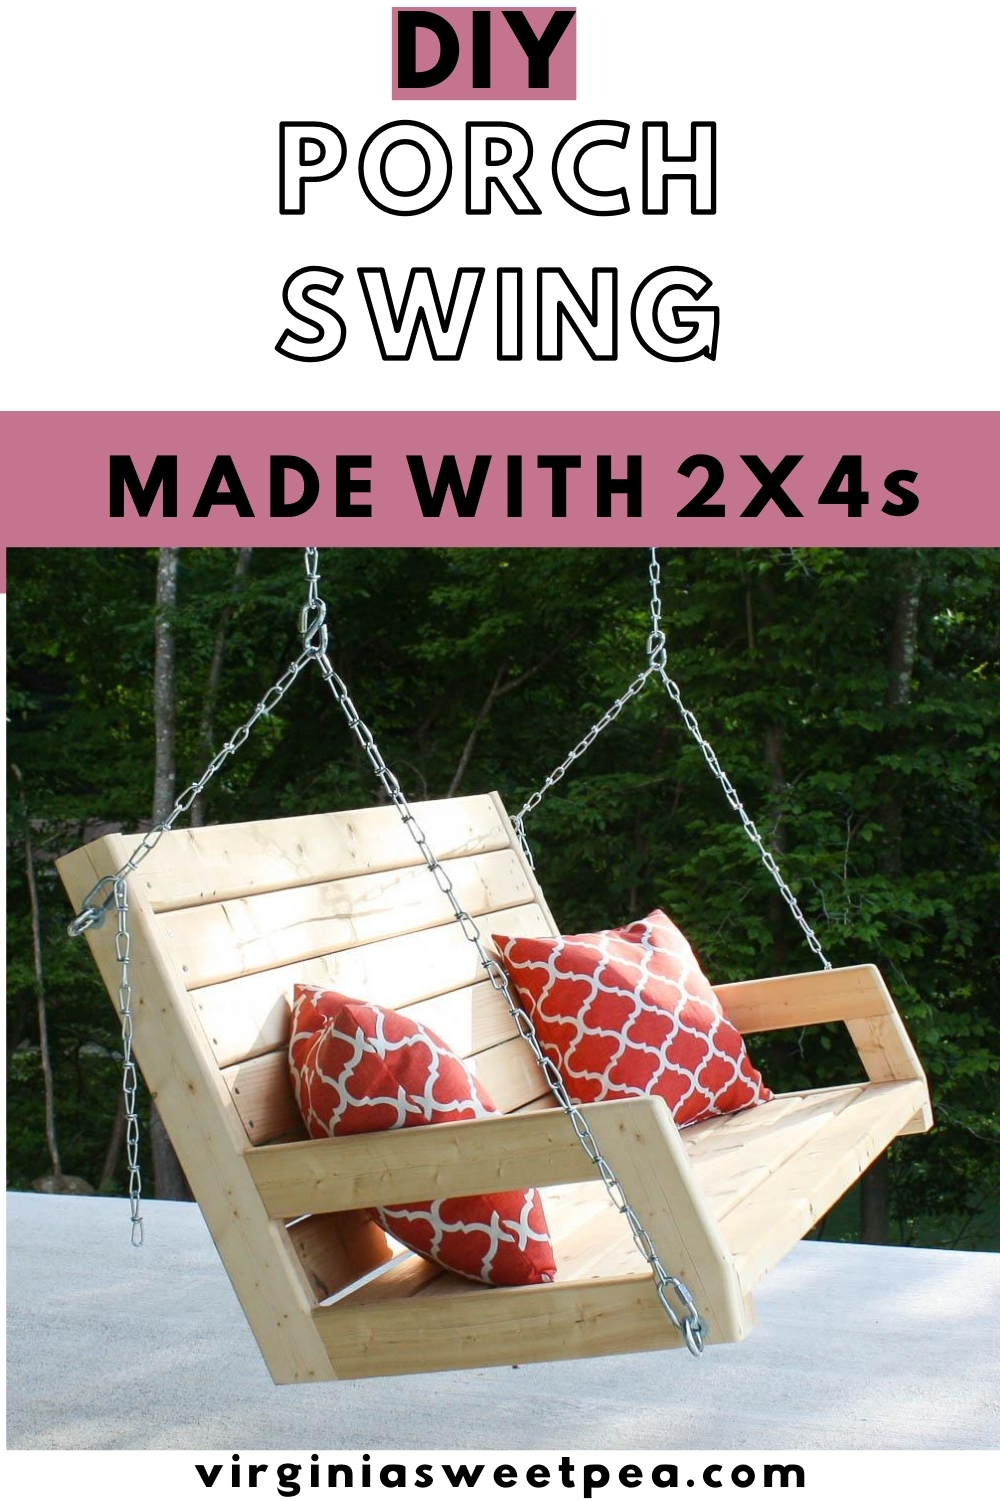 DIY Porch Swing - Learn how to make a porch swing using eight pieces of 2x4 lumber.  #diyporchswing #porchswing #diyswing  via @spaula